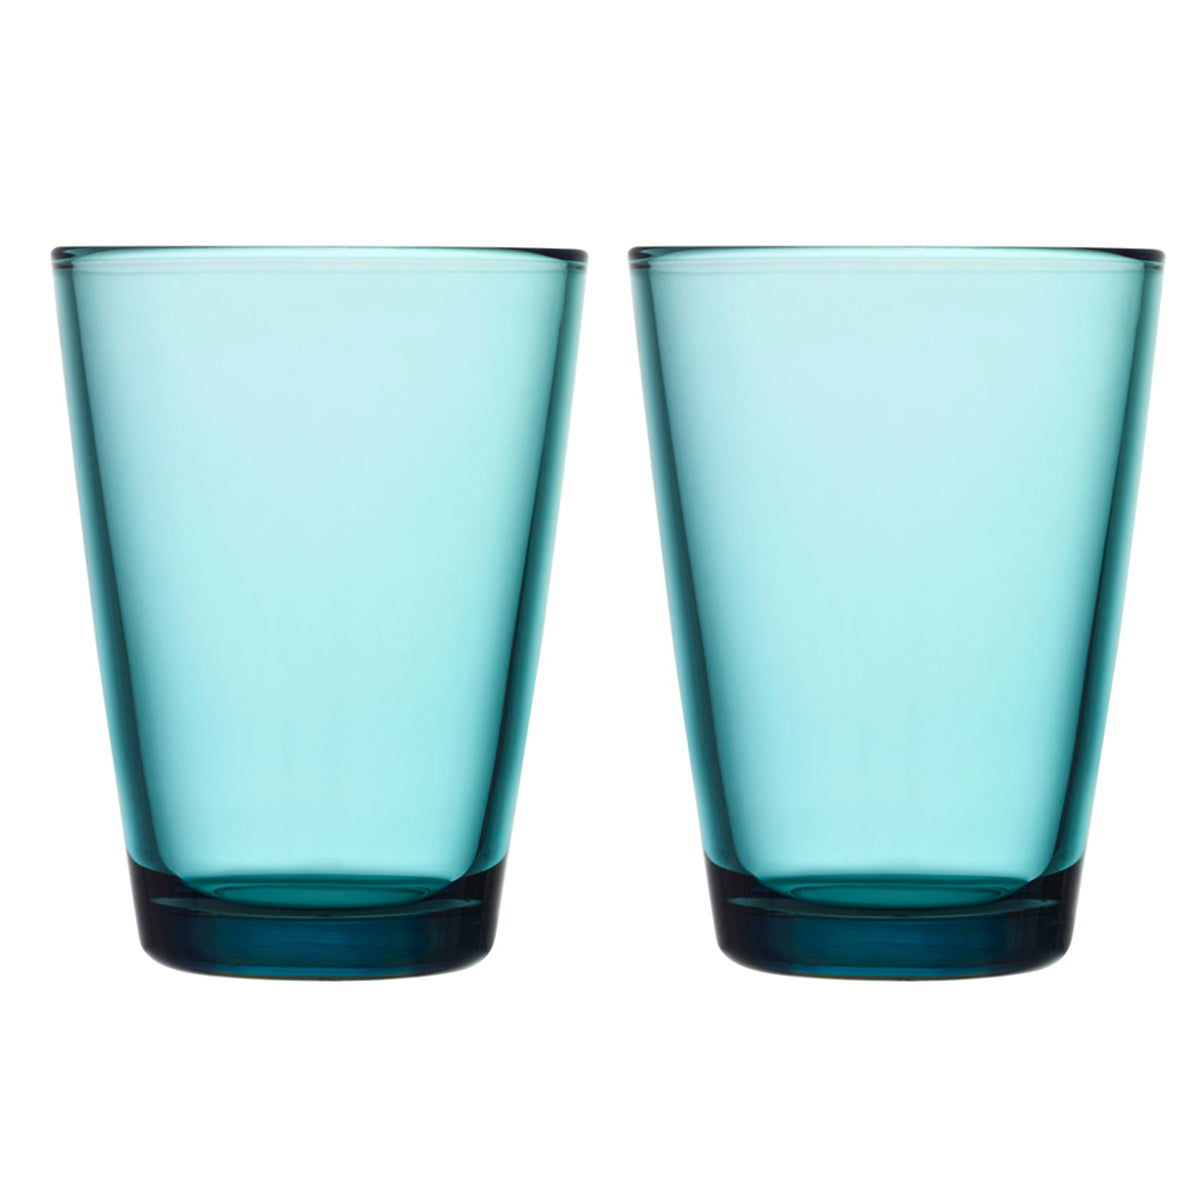 Kartio Highball Tumblers Sea Blue 400ml / Set 2 (photo fix)